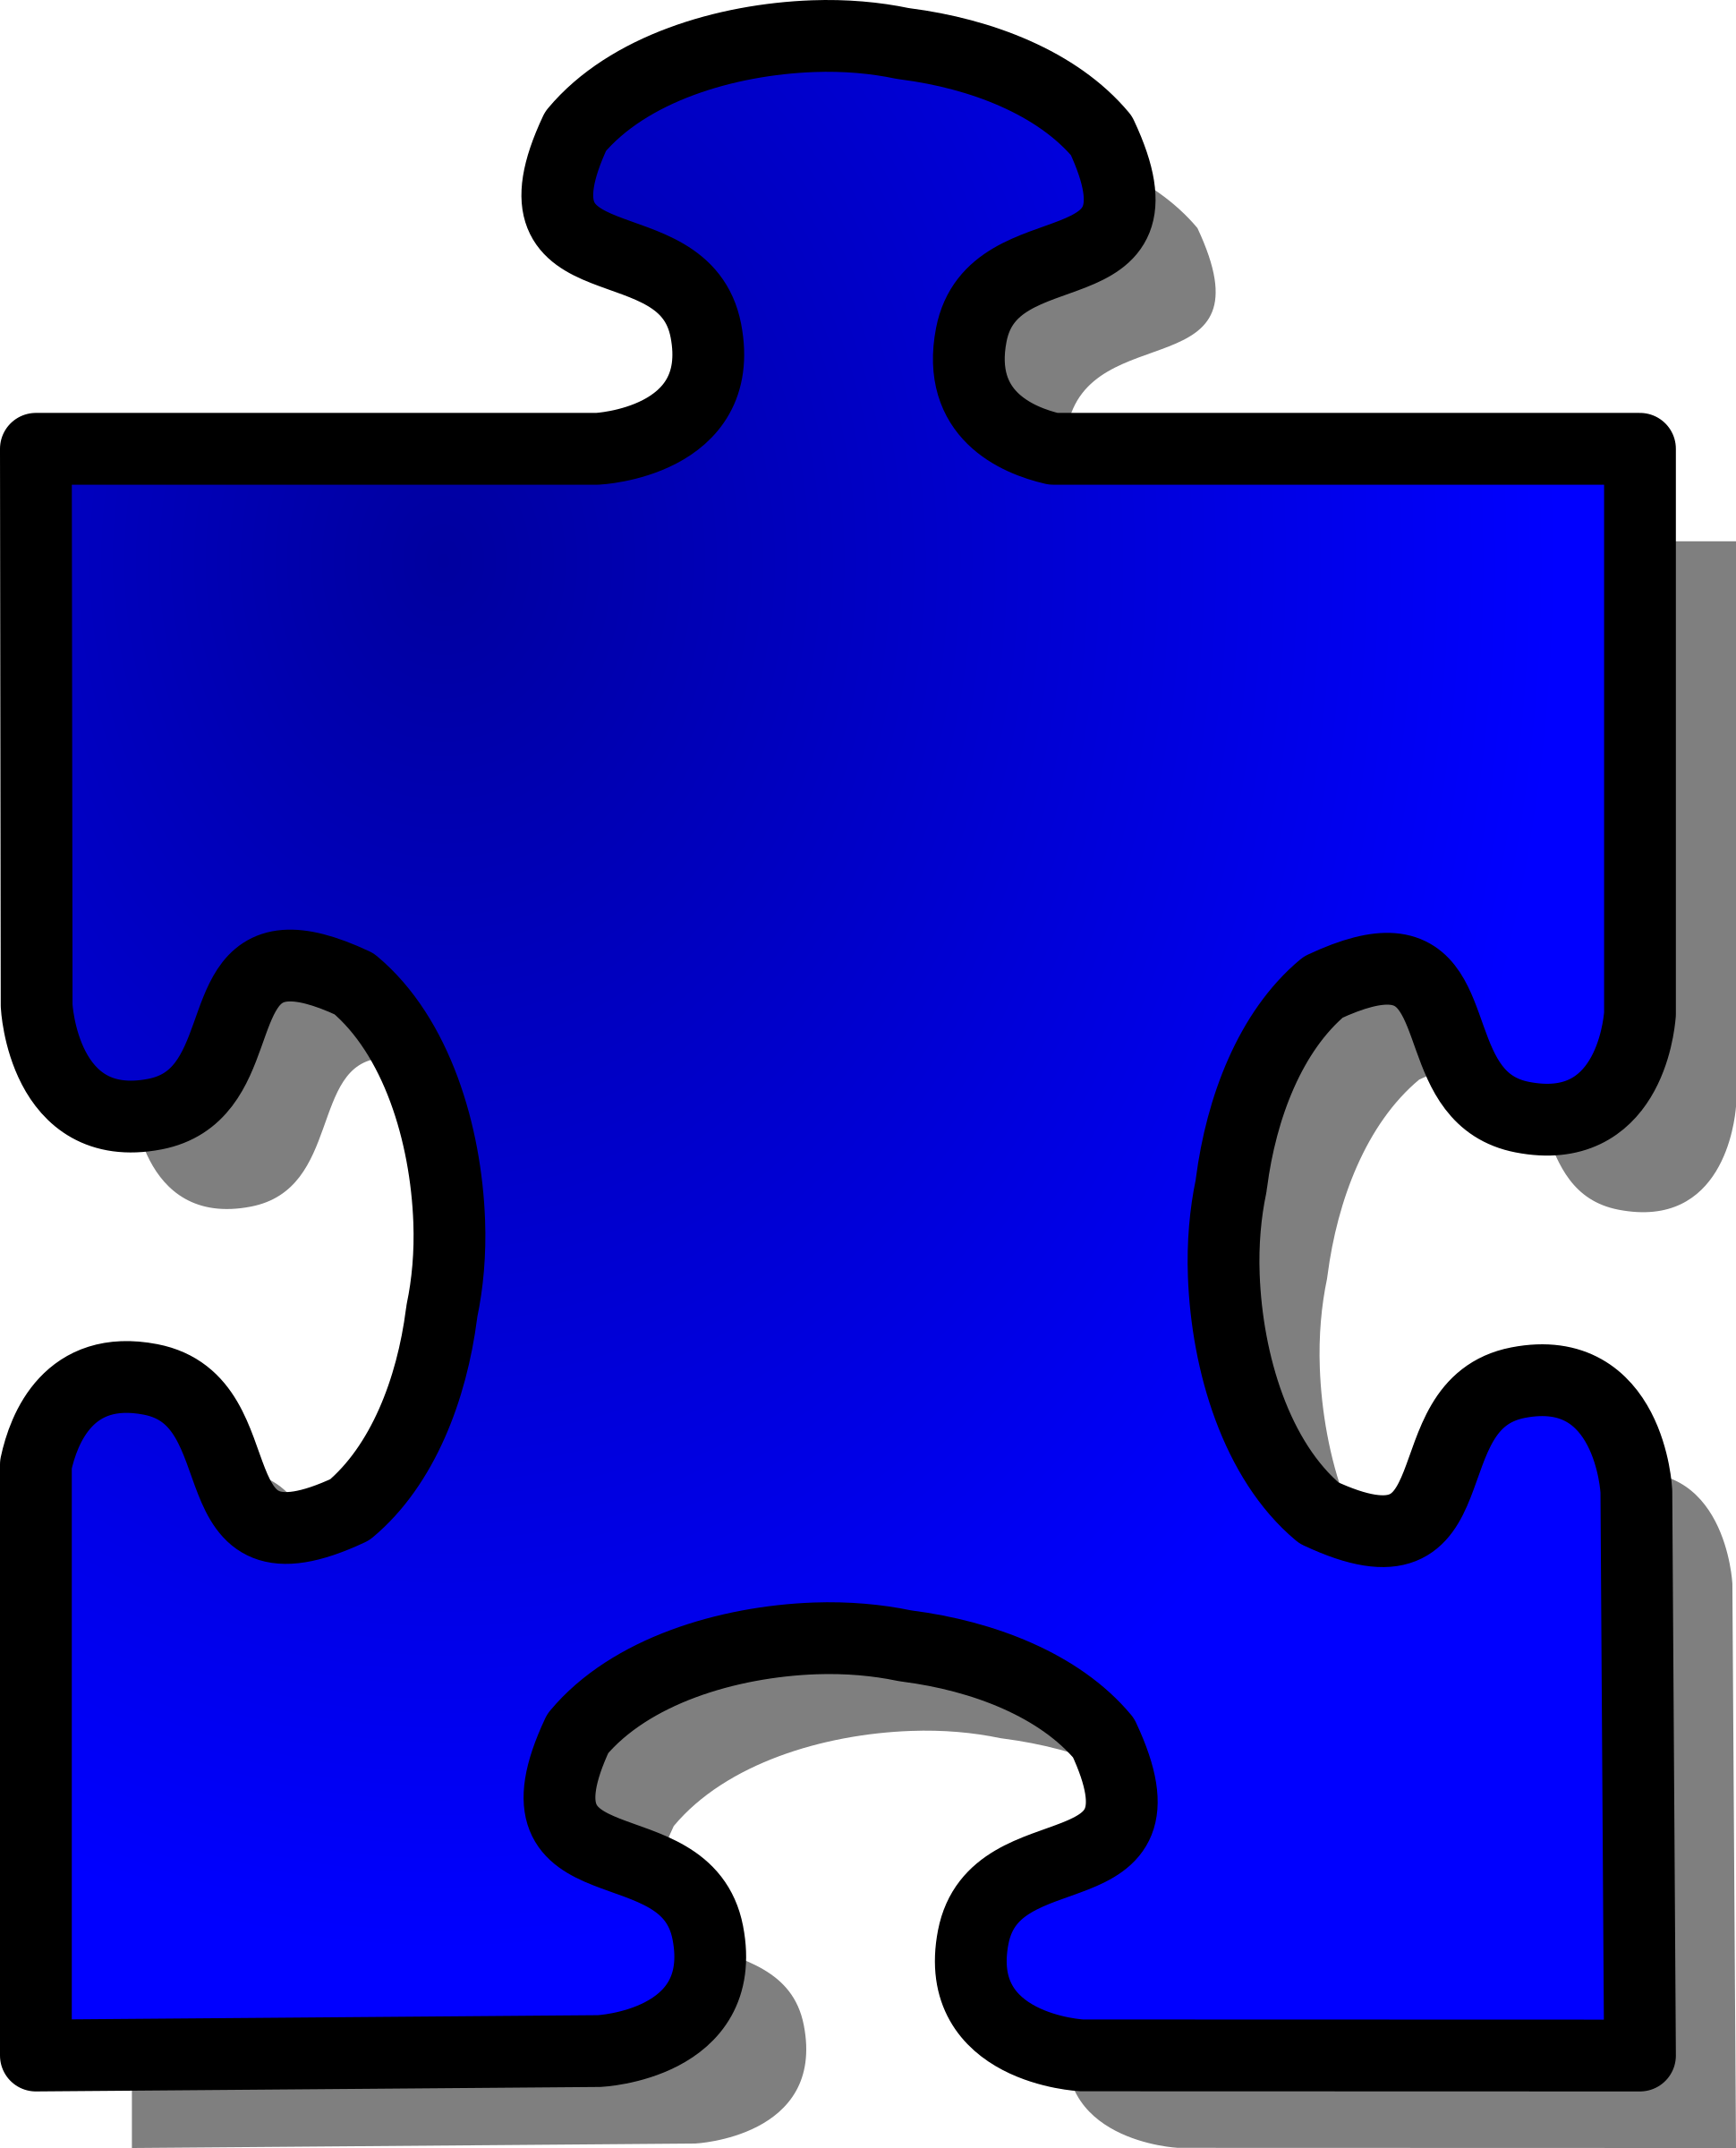 Blue Jigsaw piecev13 by nicubunu